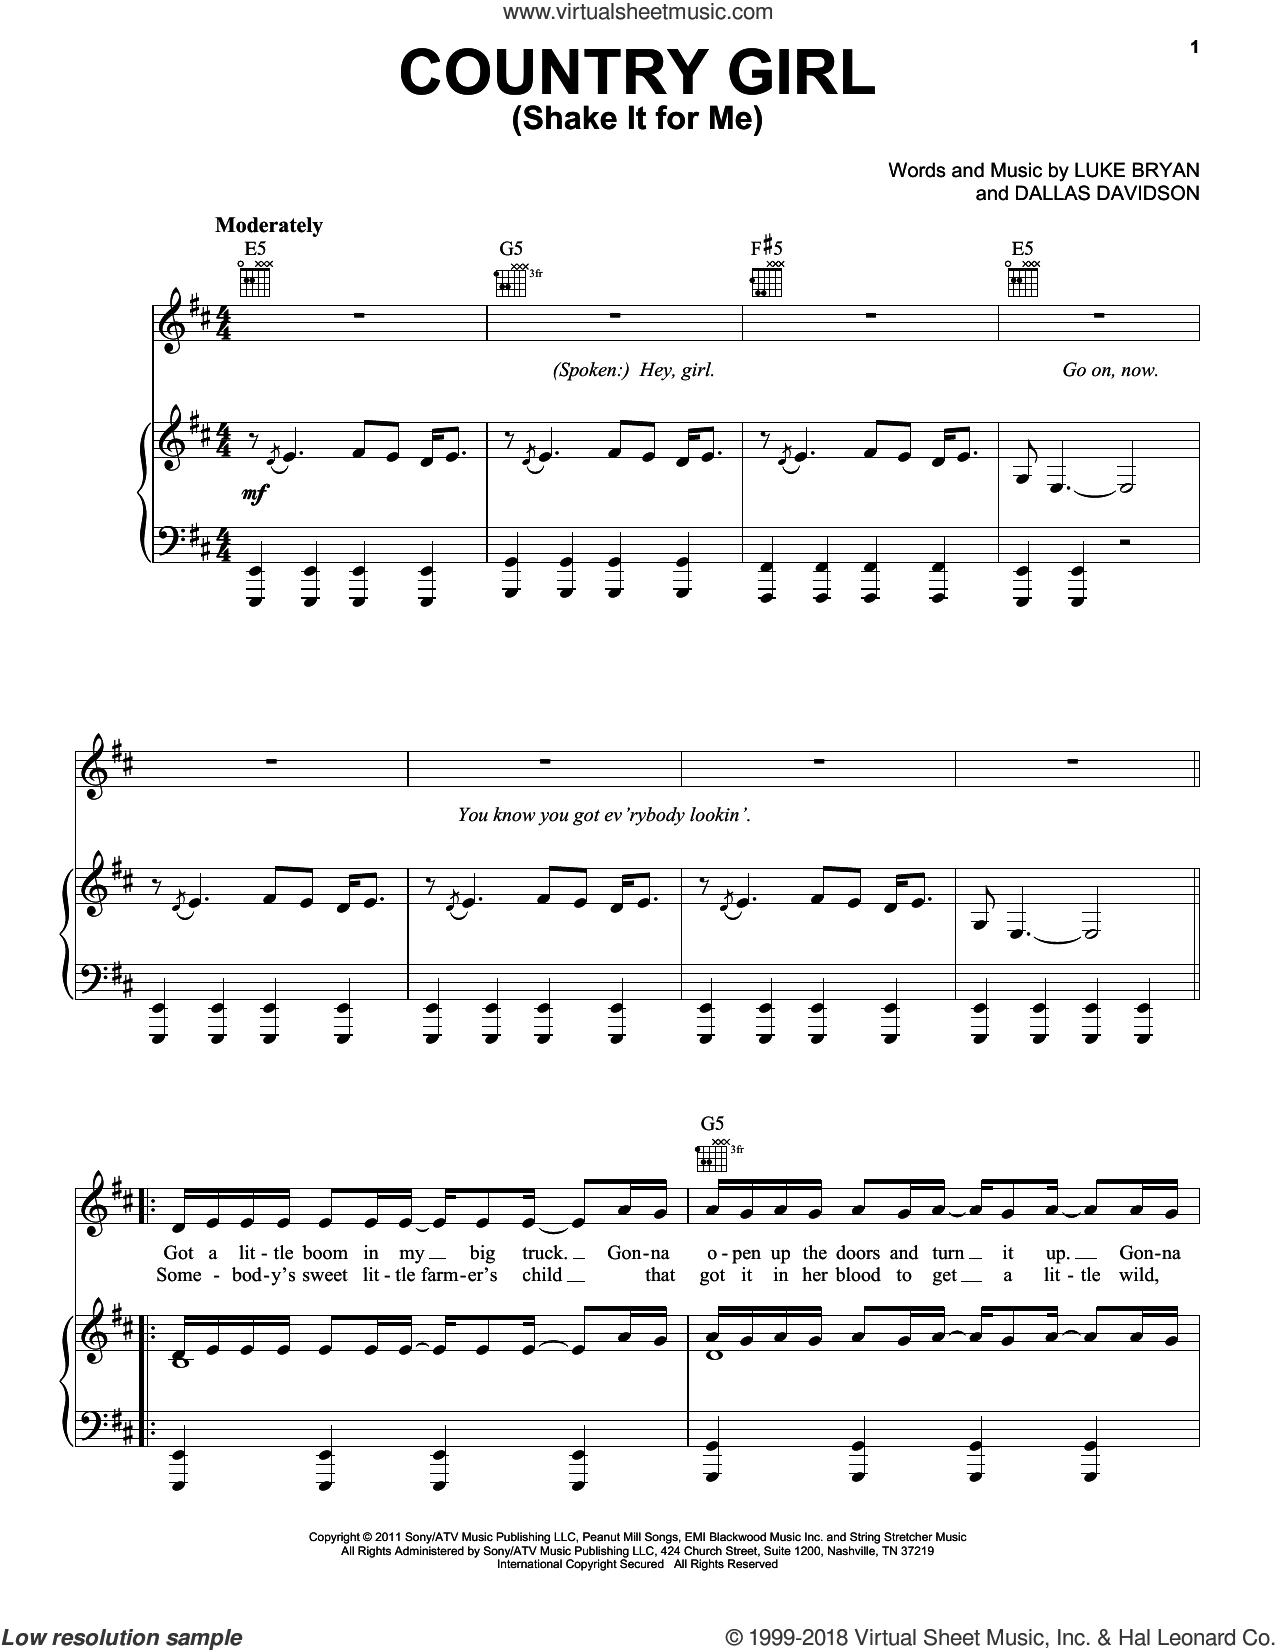 Country Girl (Shake It For Me) sheet music for voice, piano or guitar by Luke Bryan and Dallas Davidson, intermediate skill level